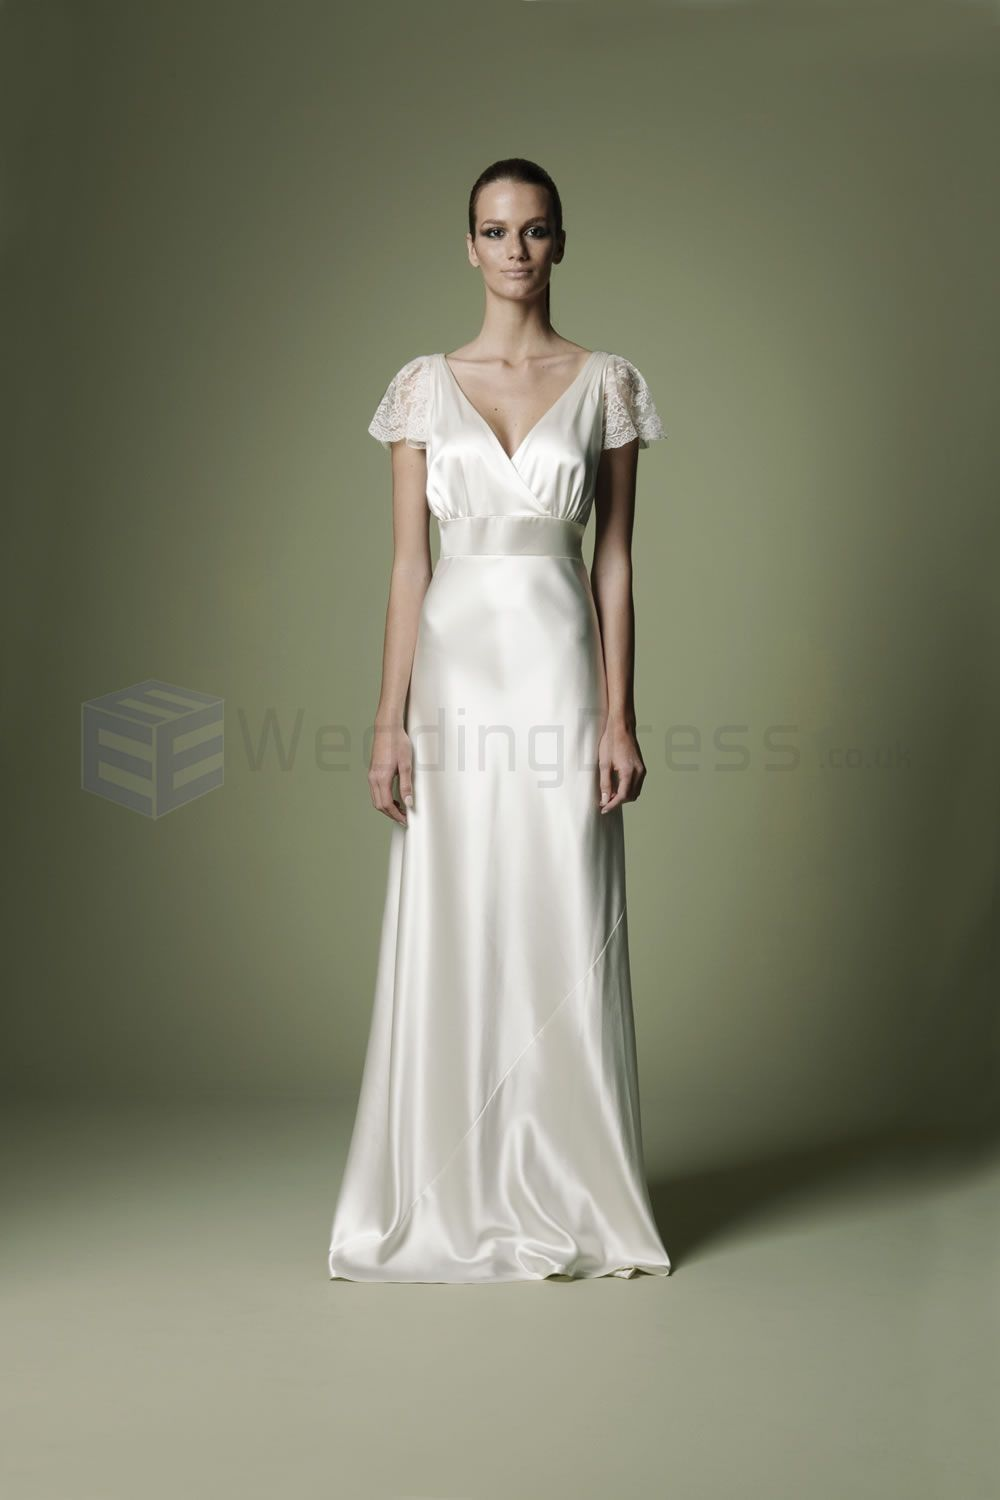 Vintage style wedding dresses crossover bodice deep for Wedding dress 30s style